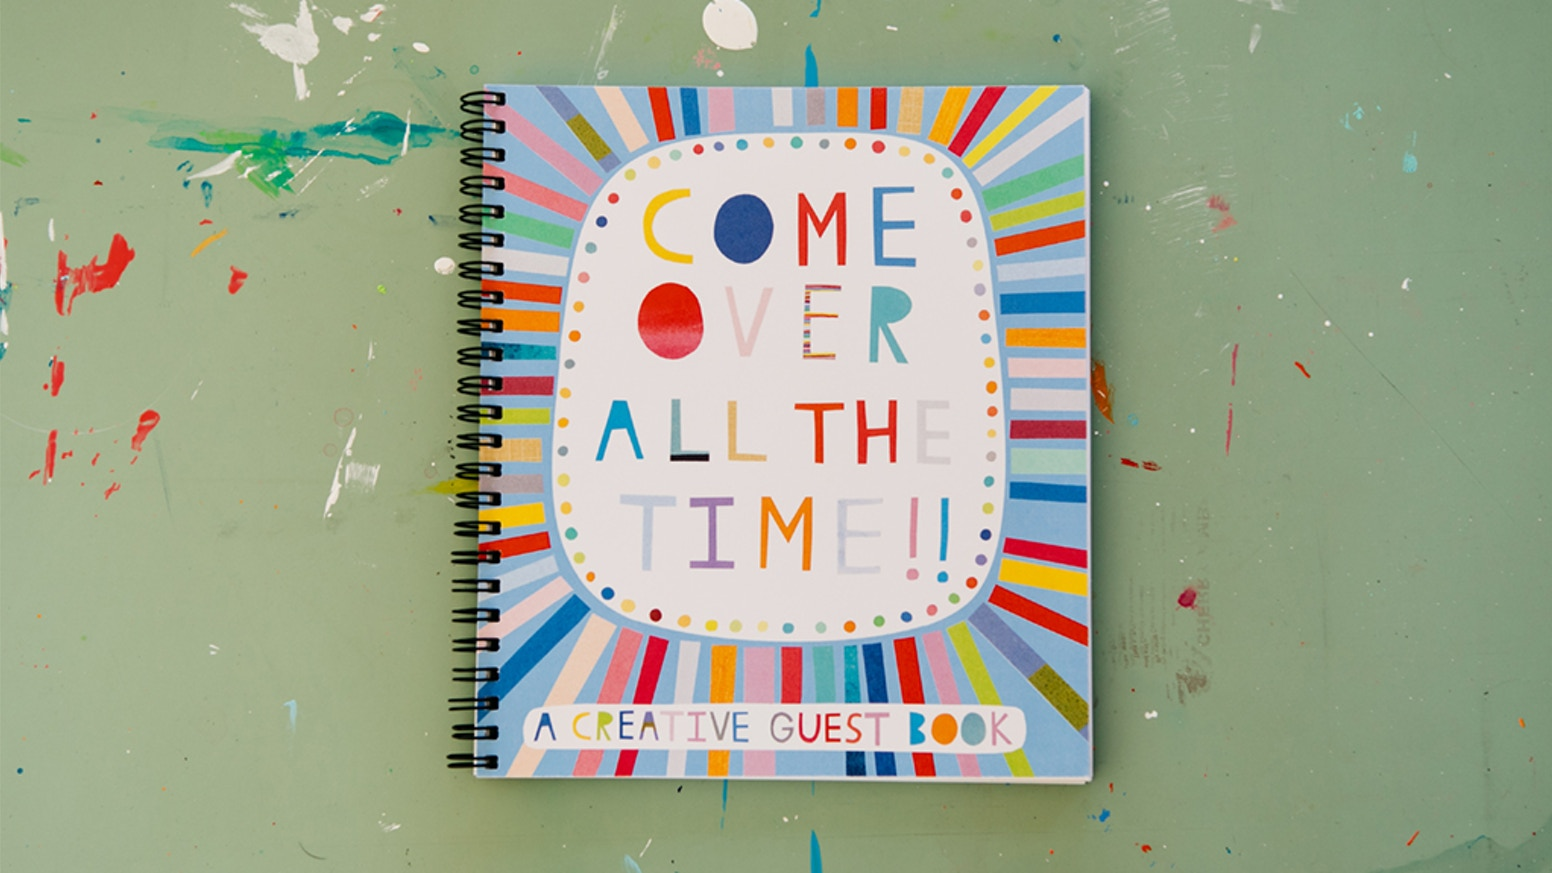 A guest book with creative prompts to capture fun times with fun people. Perfect for your coffee table, guest room, or Airbnb.